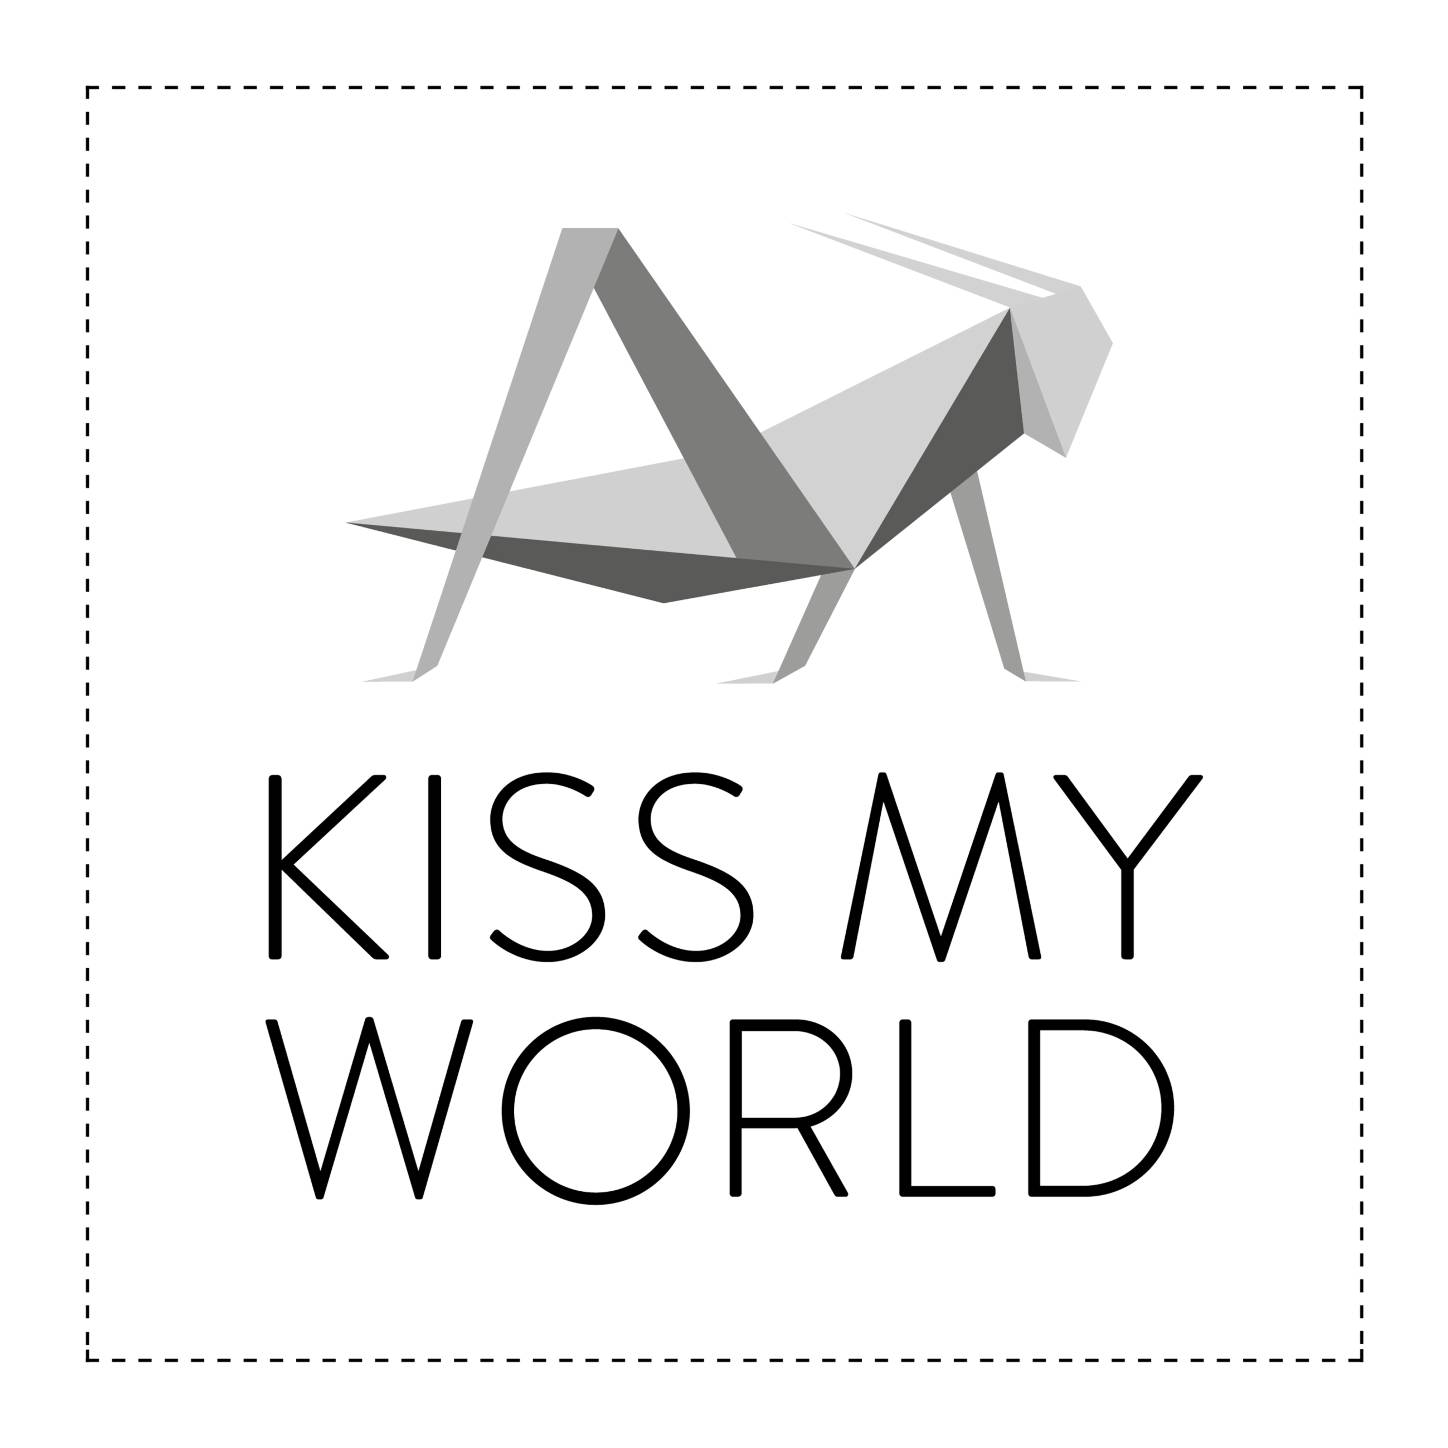 Kiss my world